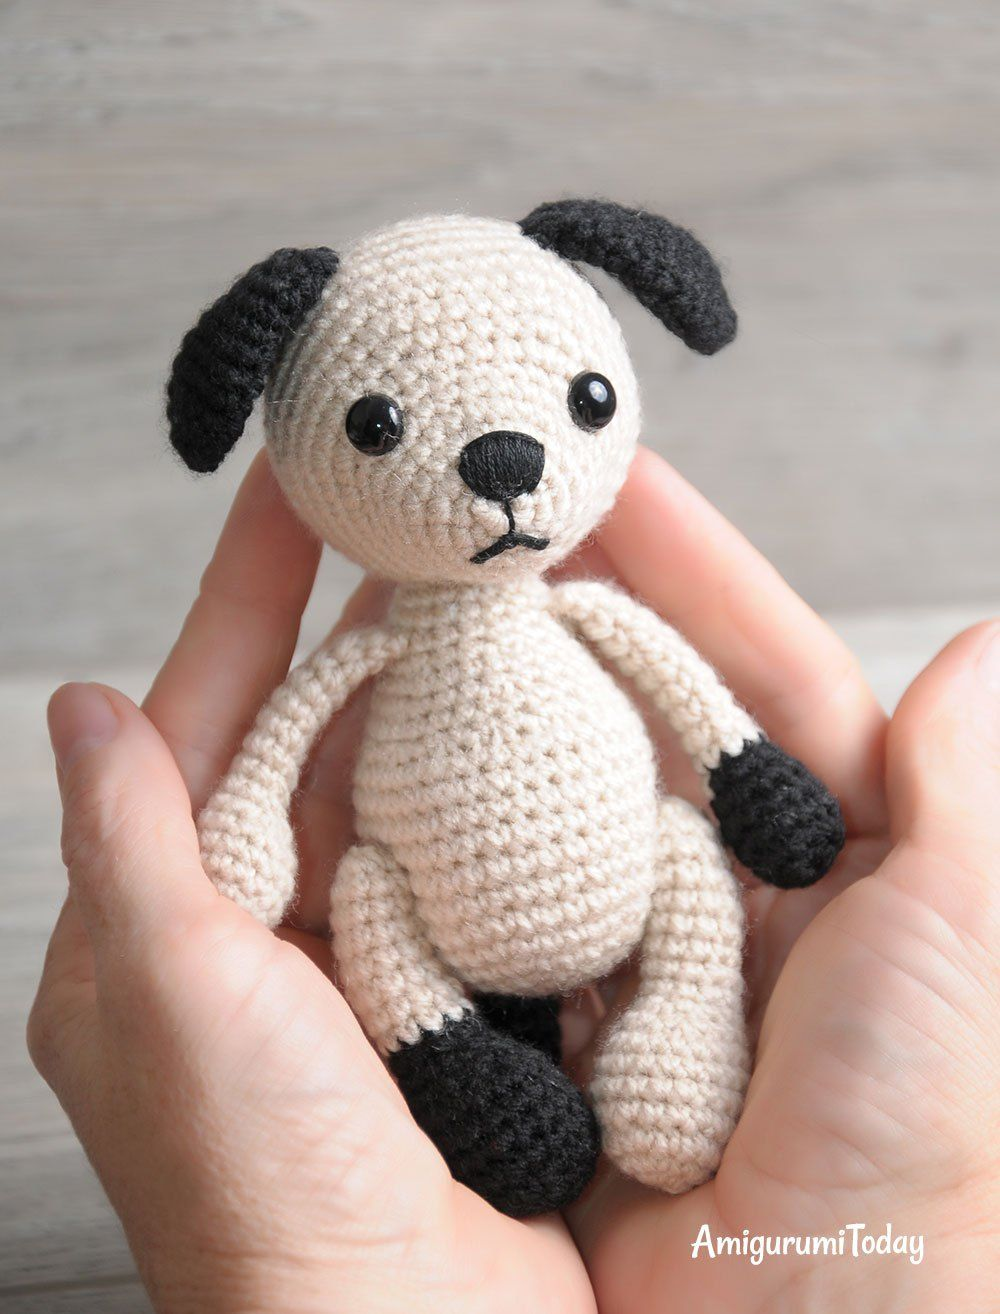 Amigurumi Dog Crochet Pattern ! Sweet Dog! - Free Amigurumi ... | 1314x1000